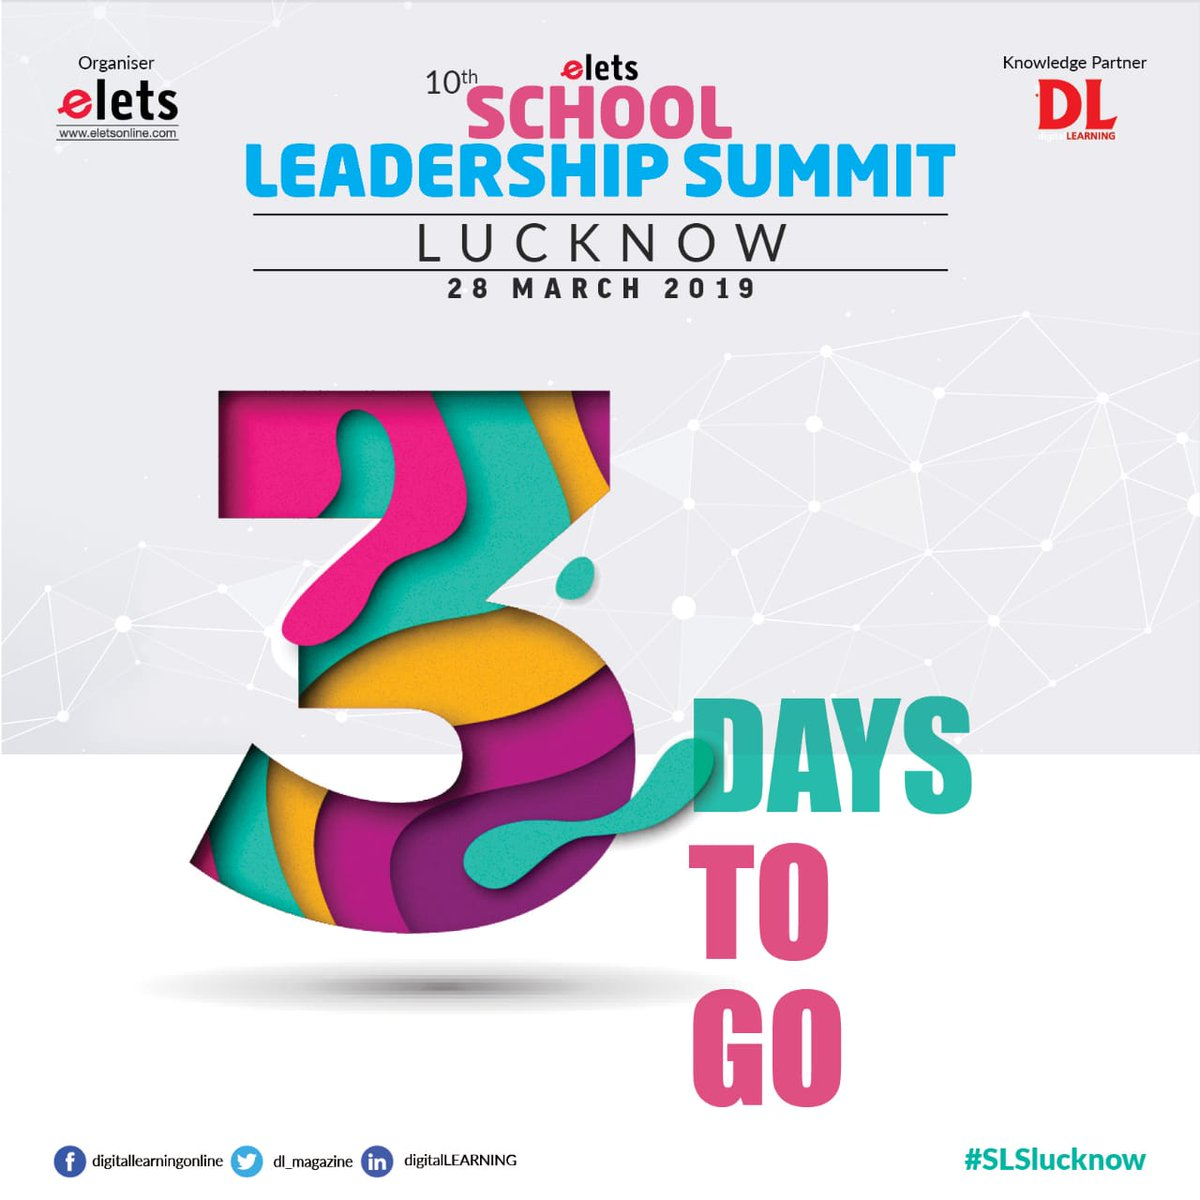 test Twitter Media - 3 DAYS TO GO!!!  Be a part of 10th School Leadership Summit to know about the latest and most innovative practices of School Education. The event is going to be organised on March 28, 2019.  #education #Schooleducation #SLSlucknow  @eletsonline @chandananand26 @dubeyashutosh79 https://t.co/fNXLw54TFZ